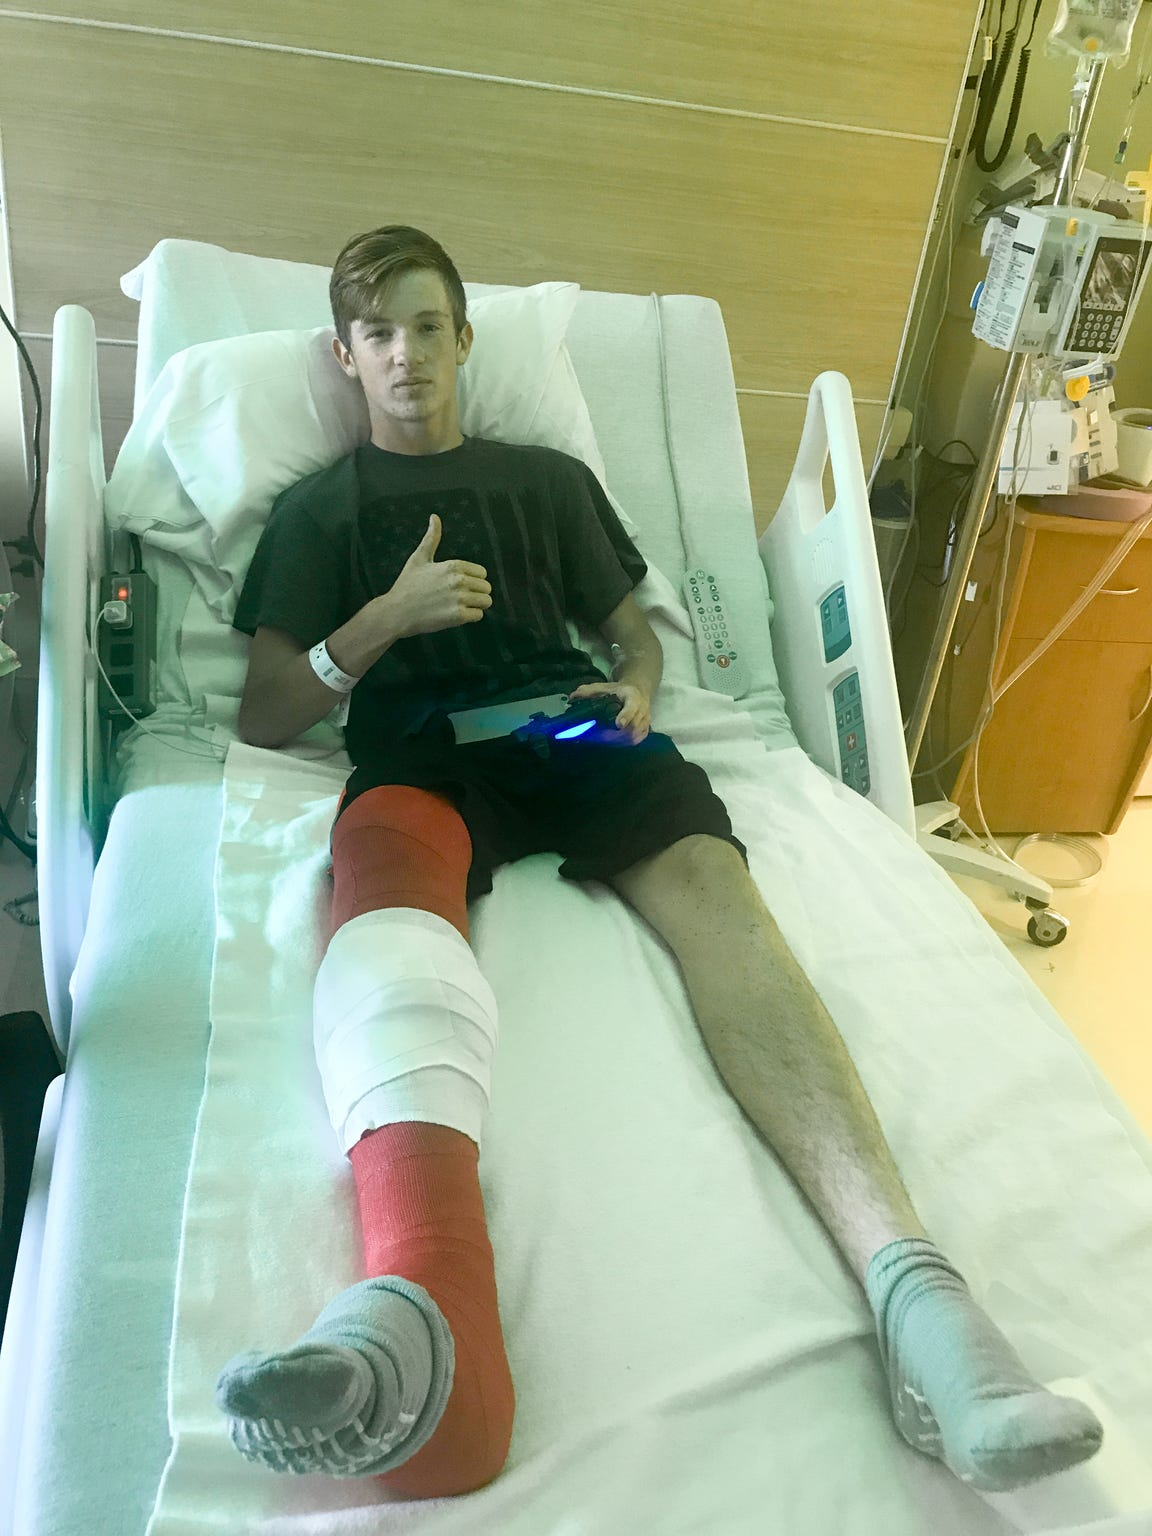 Walker Kinnison gives a thumbs up while resting in his hospital bed, shortly after a four-wheeler accident that broke his tibia and bones in his foot and ankle.